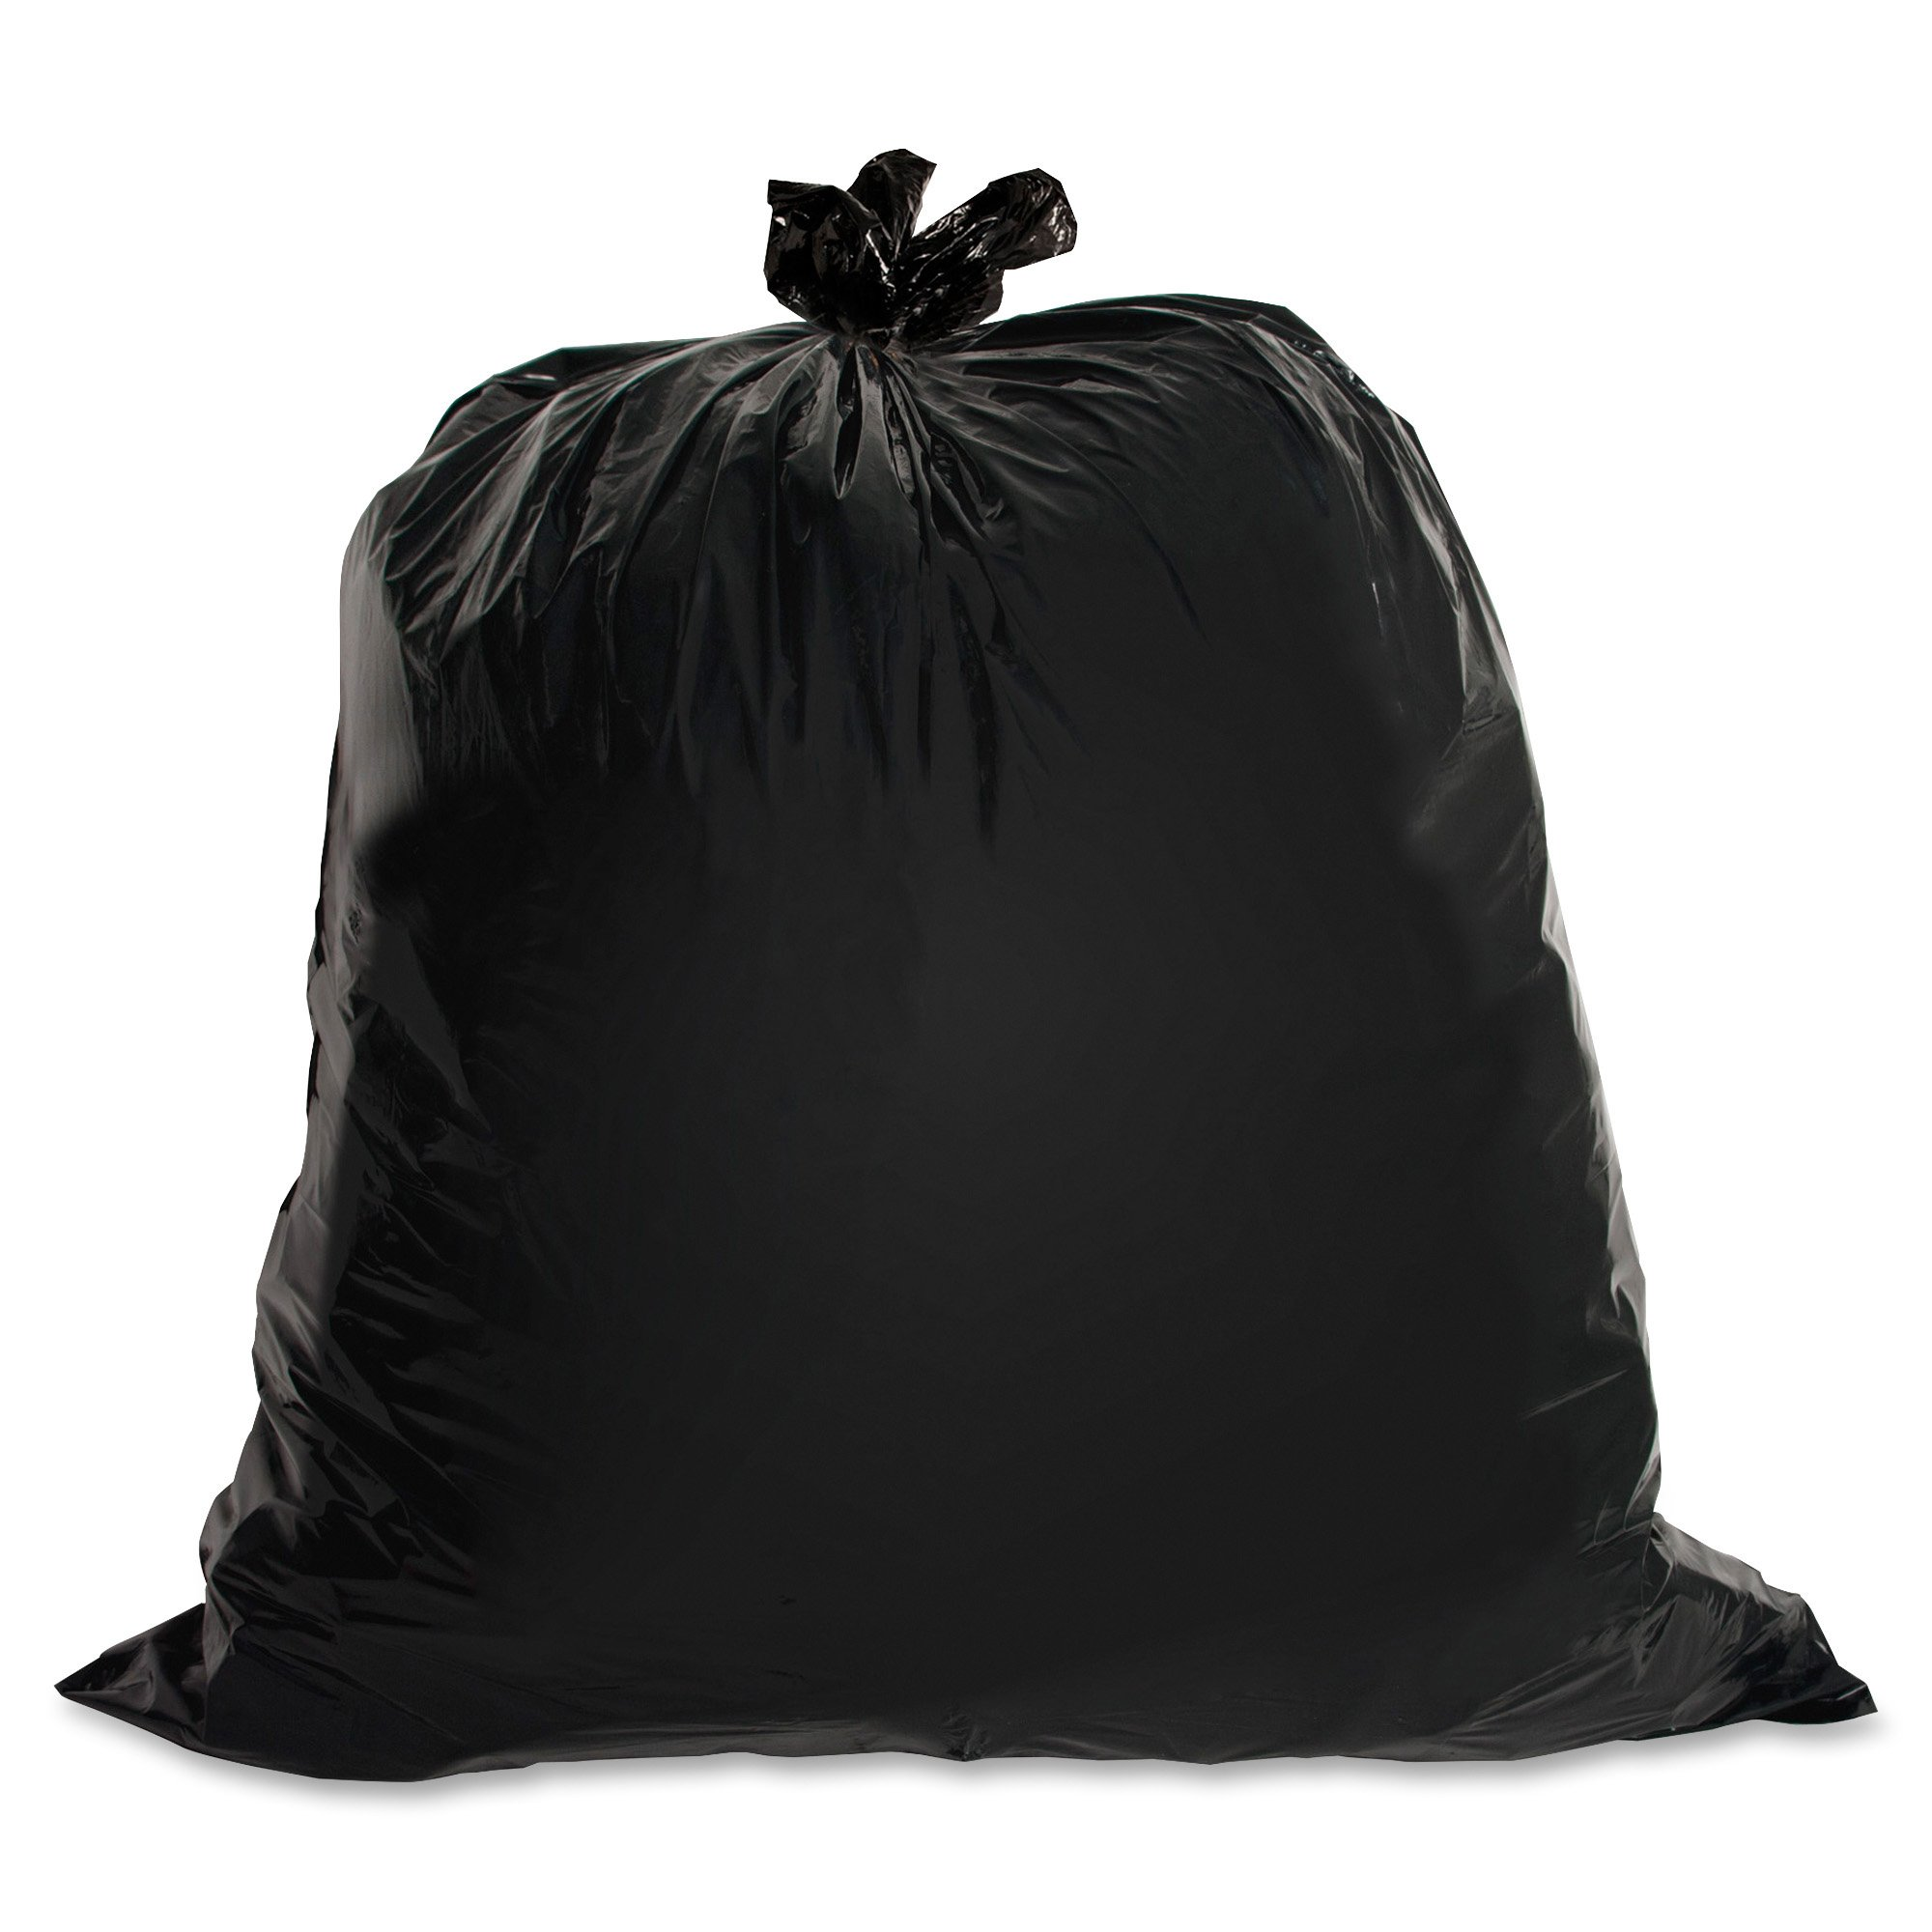 Genuine Joe GJO01534 Heavy Duty Low-Density Puncture Resistant Trash Bag, 45 Gallon Capacity, 46'' Length x 39'' Width x 1.50 mil Thickness, Black (Box of 50) by Genuine Joe